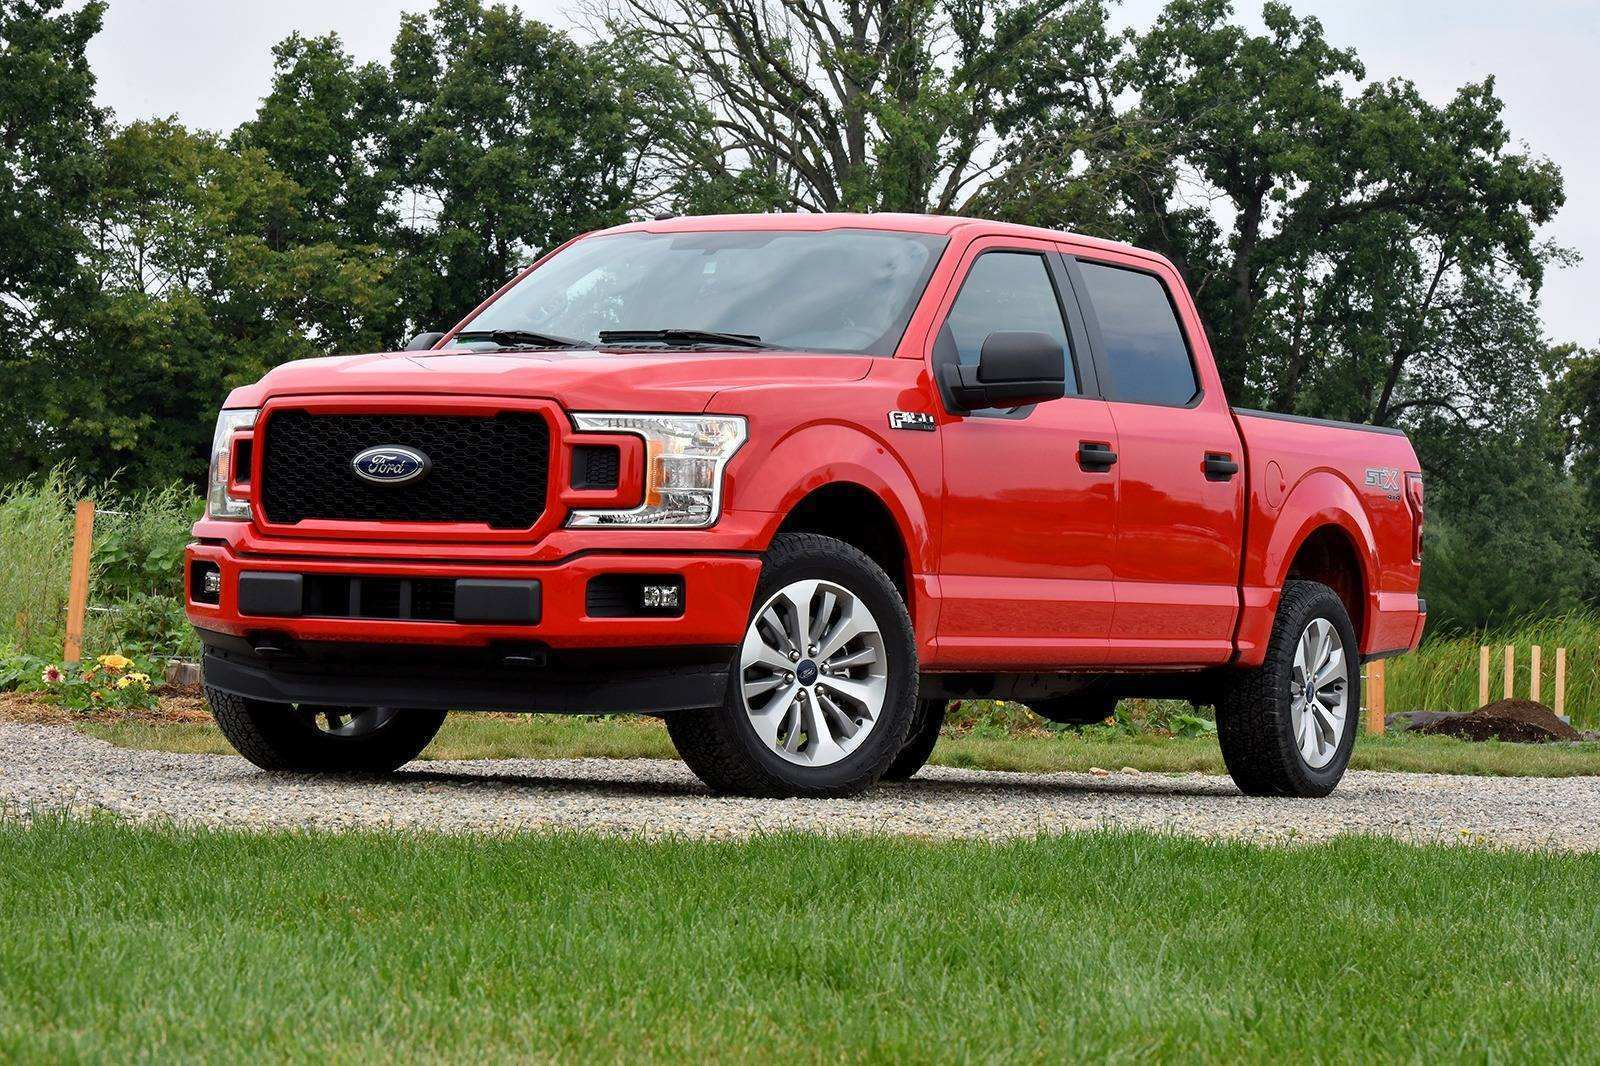 17 All New 2019 Ford F150 Speed Test for 2019 Ford F150